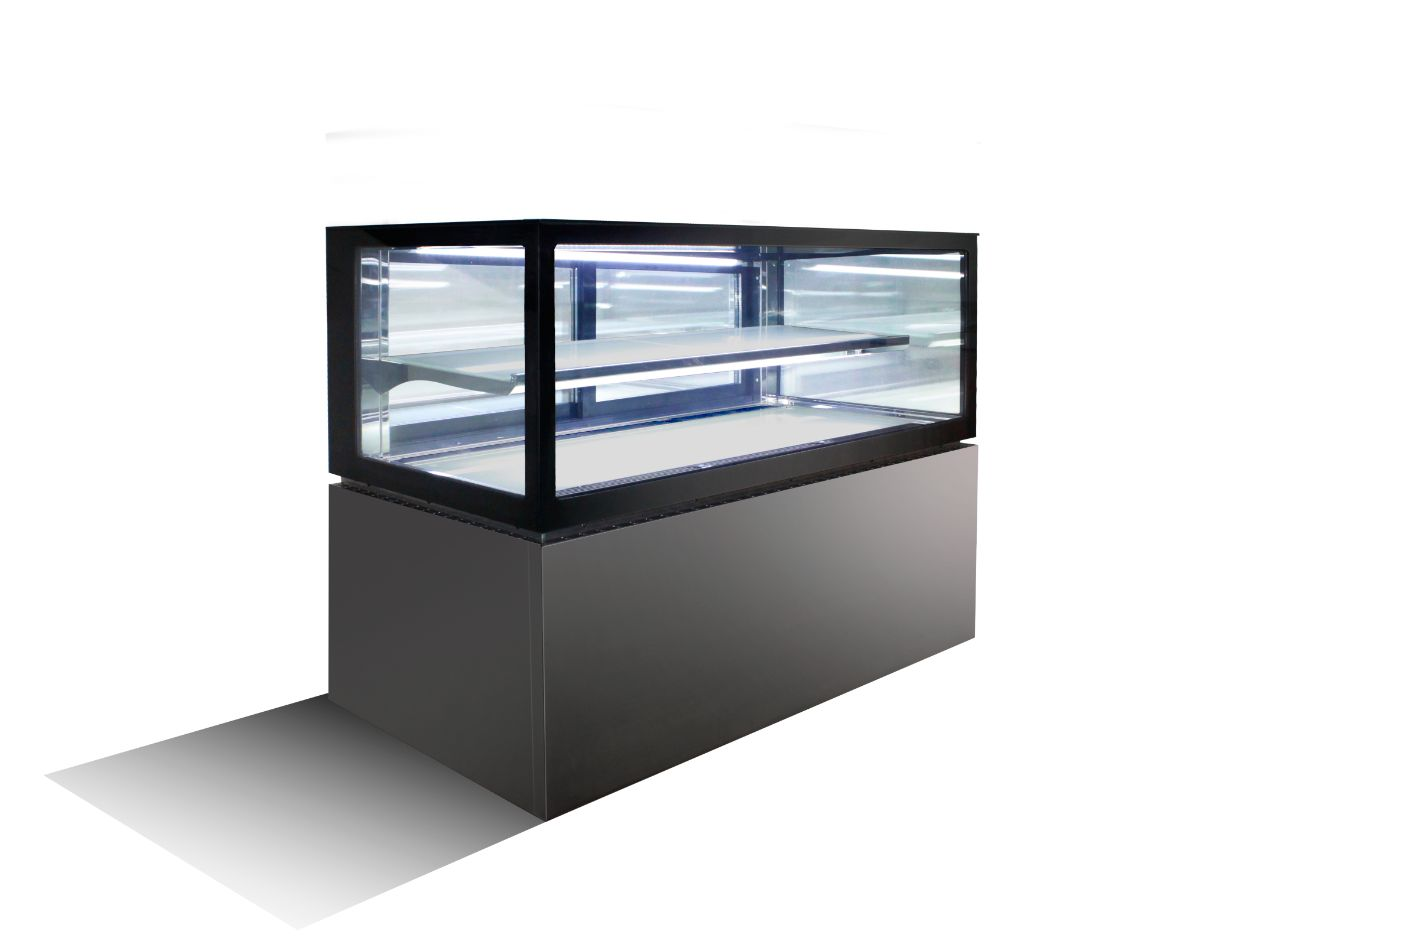 Anvil Aire NDSJ2750 Low Line Jewellery Display 2 Tier 1500mm